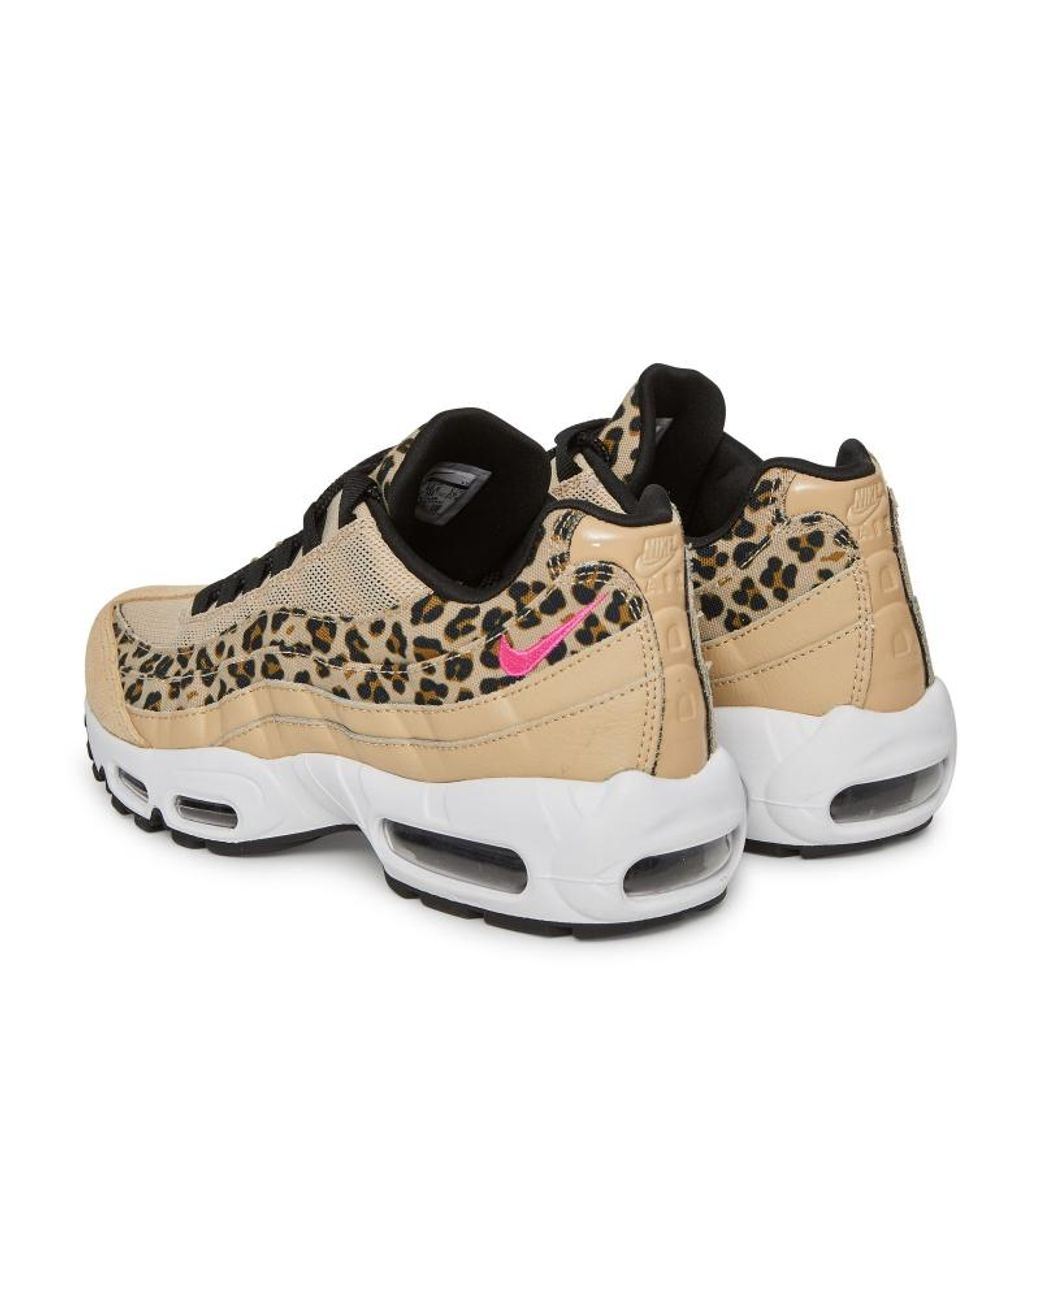 super popular 0d94e c75c3 Women's Wmns Air Max 95 Premium Sneakers Desert Ore/fuchsia